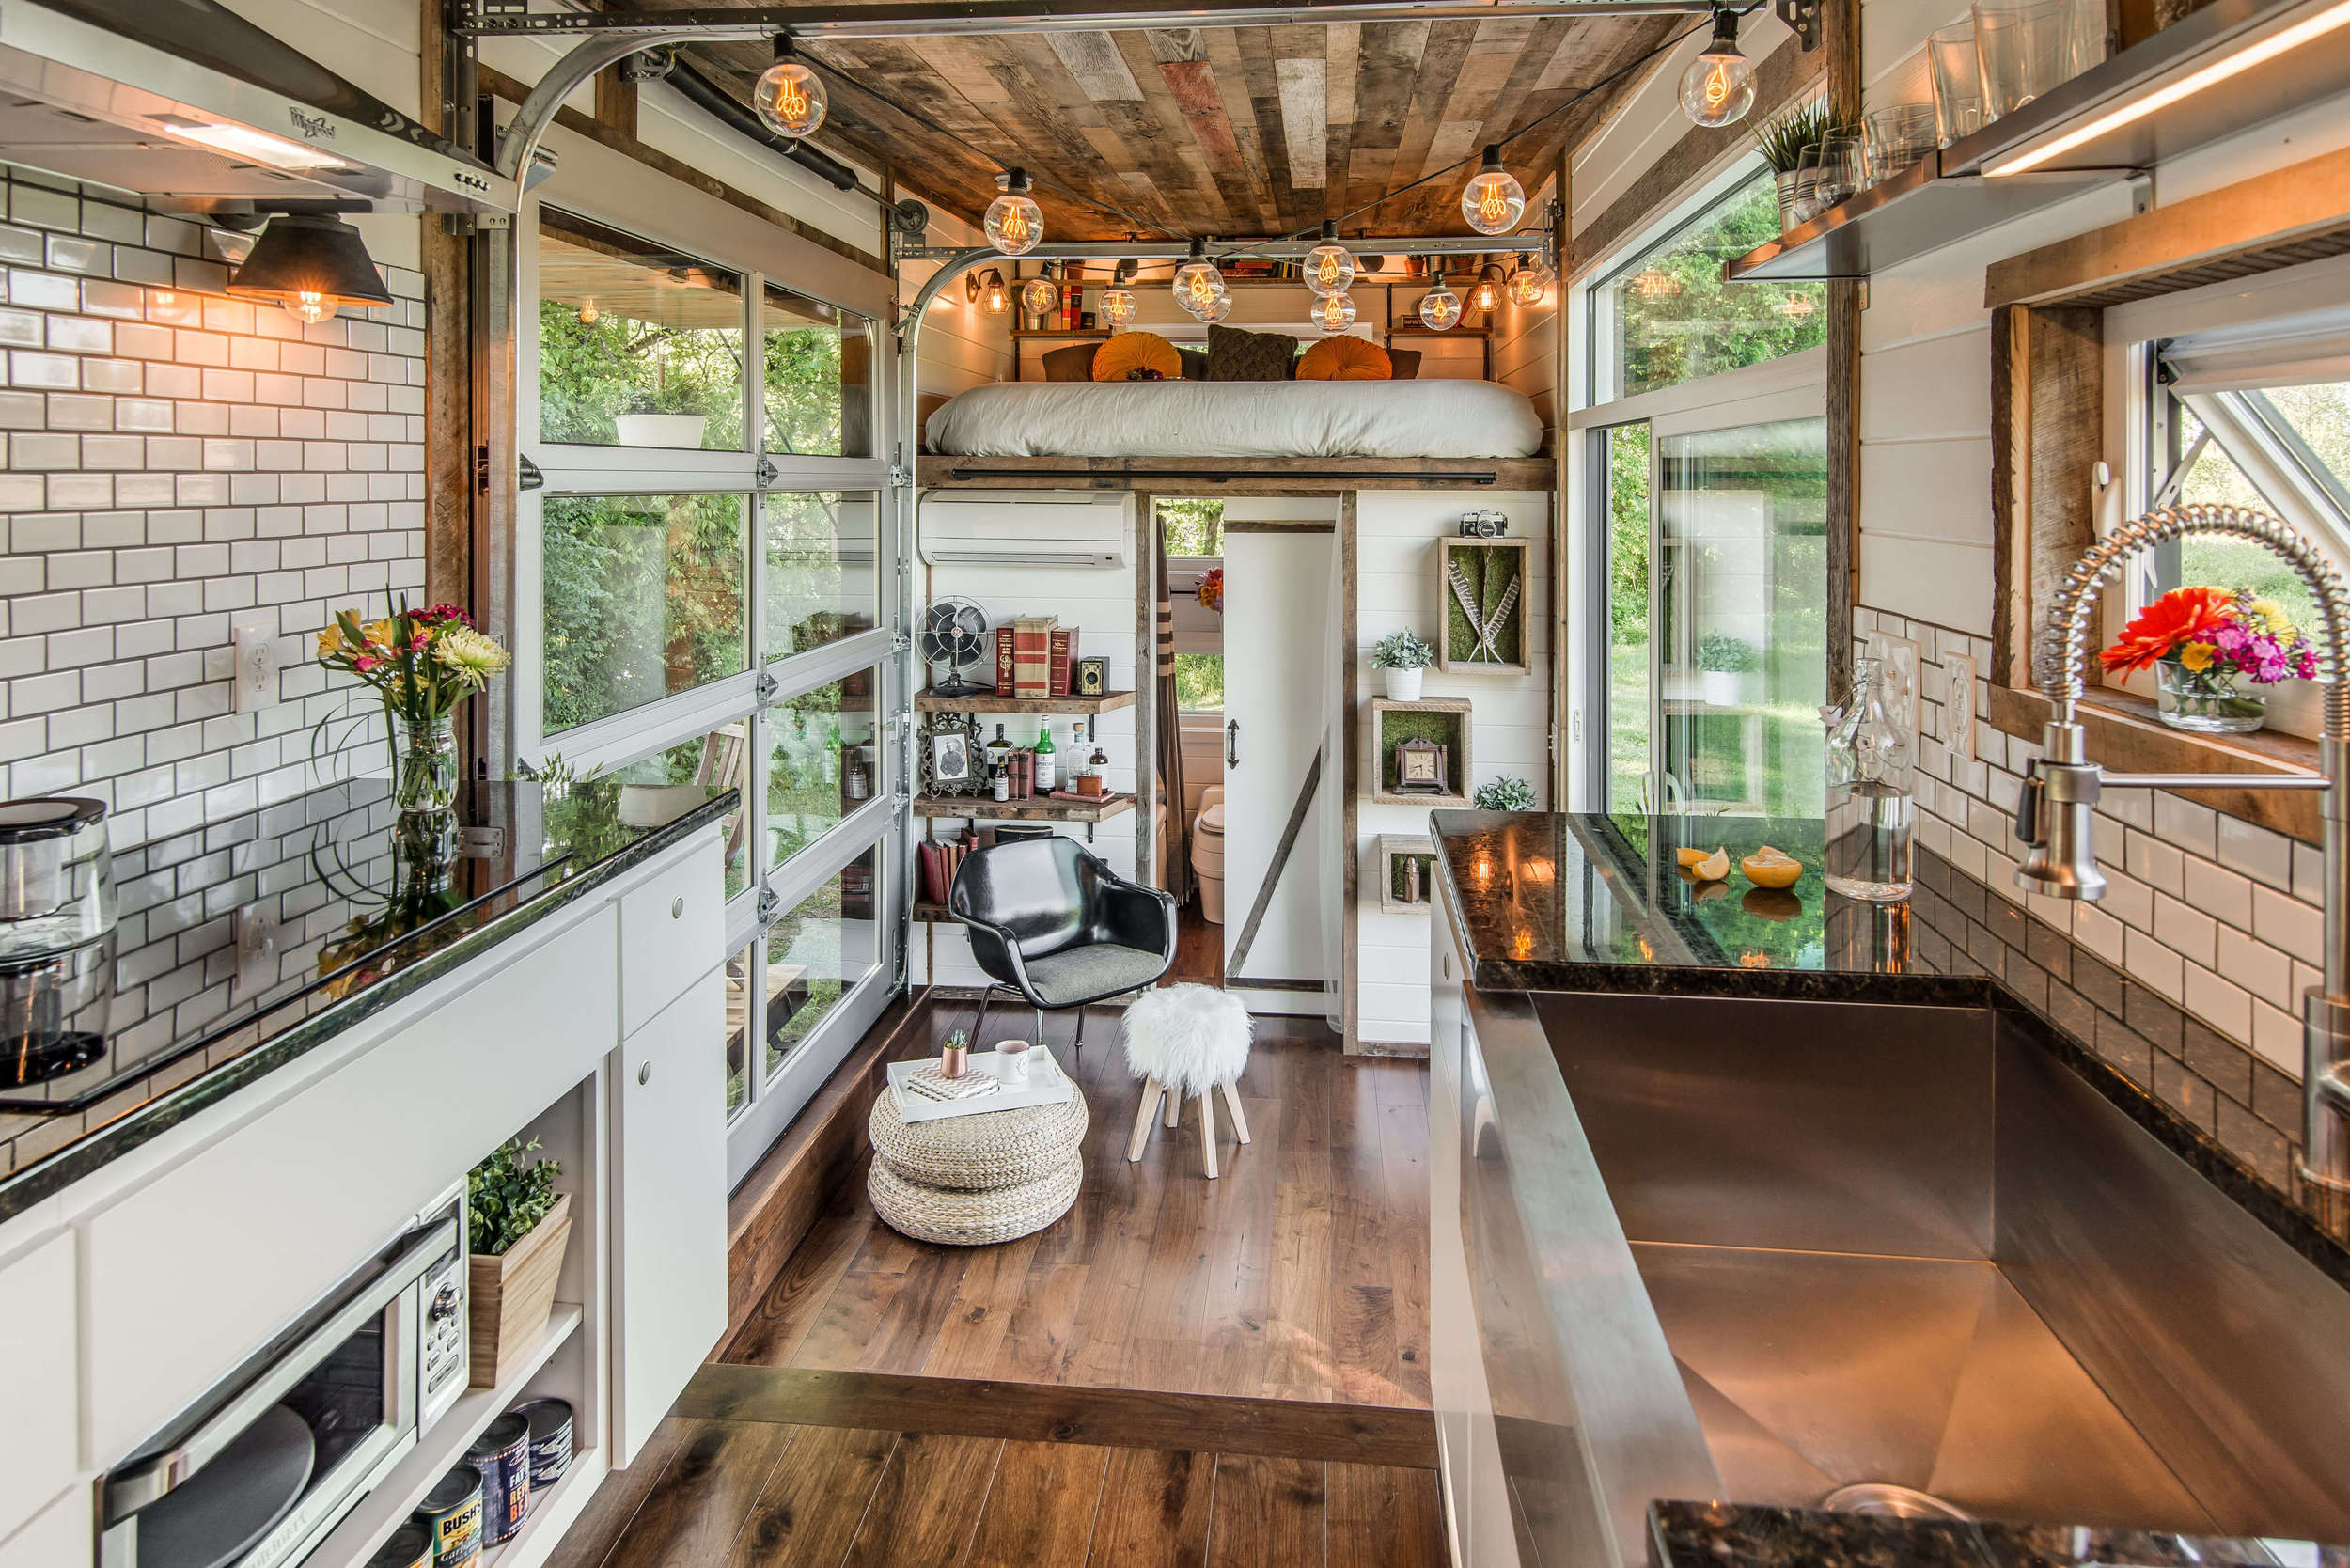 View toward kitchen the alpha tiny home by new frontier tiny homes - Tiny Houses For Sale Floor Plans Listings New Frontier Tiny